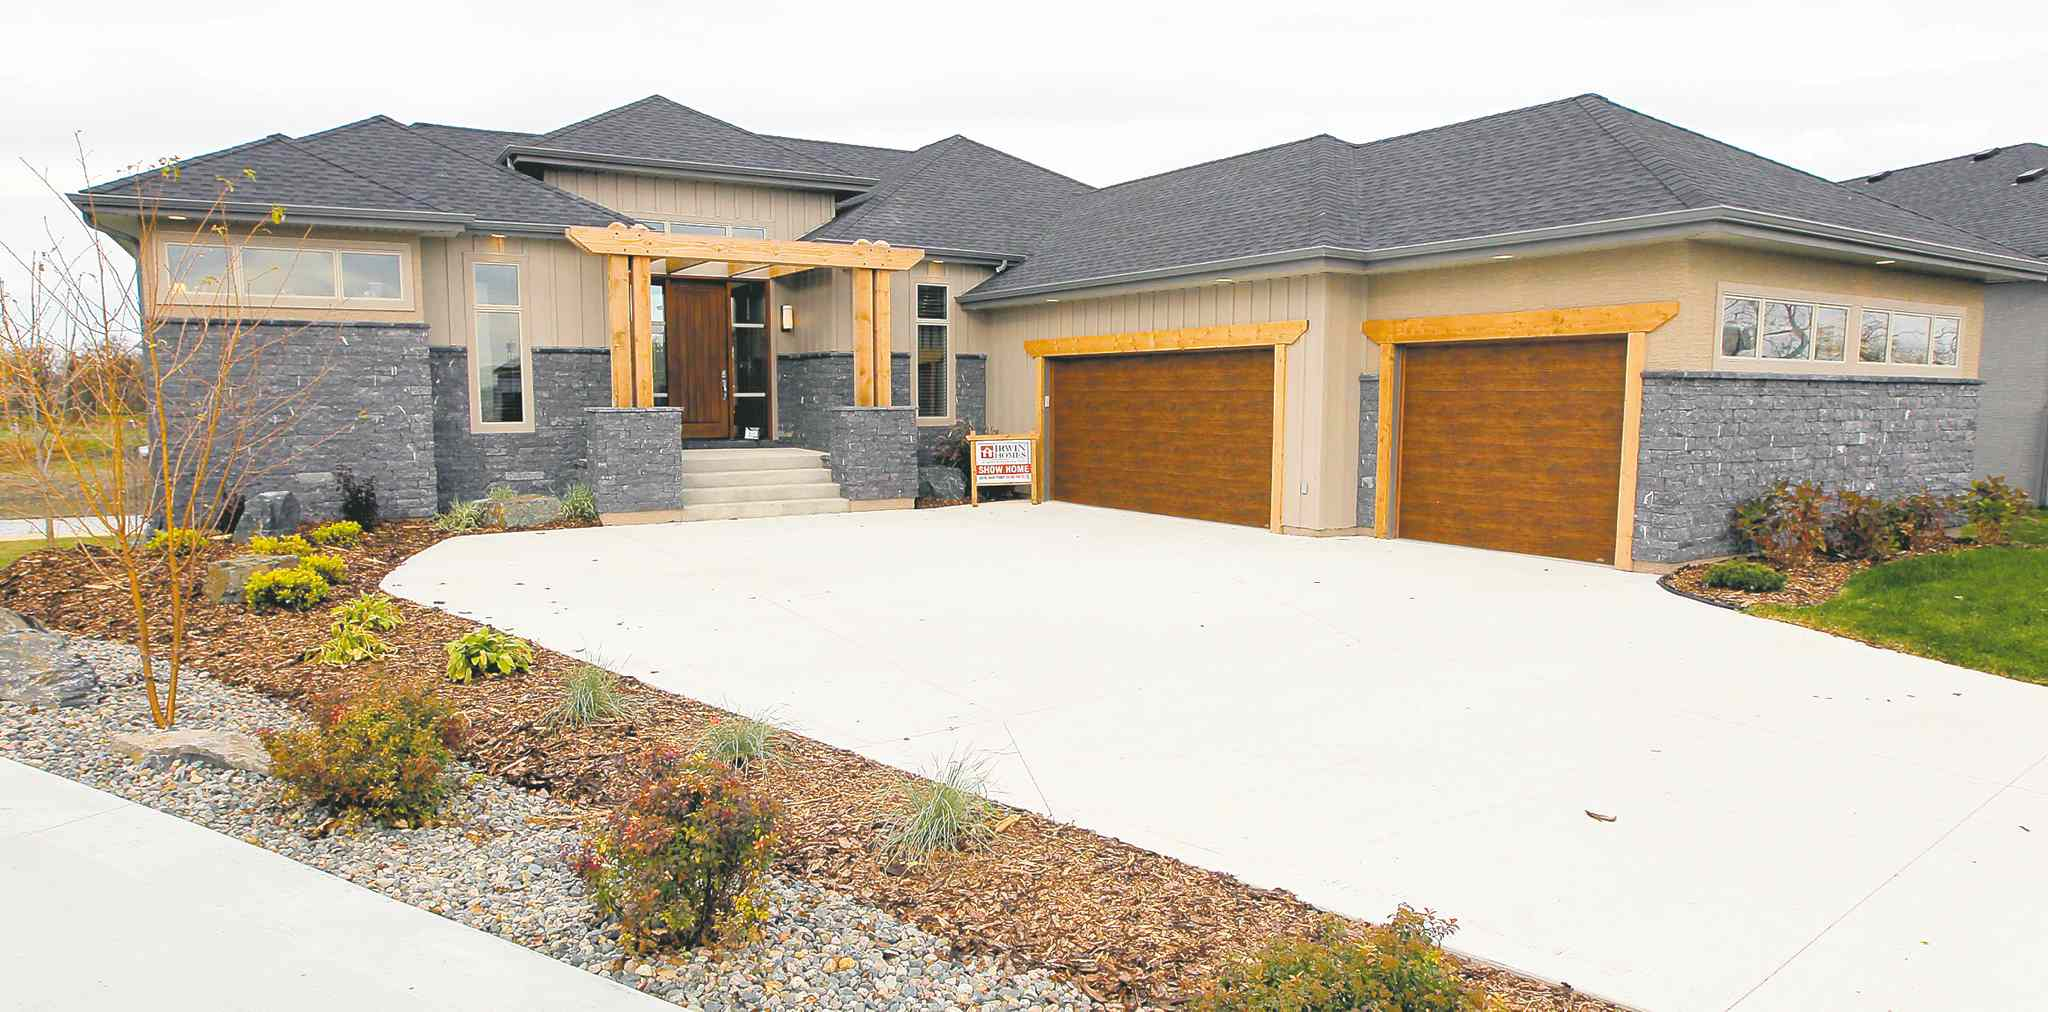 This new 1,900-square-foot home in Countryside Crossing, East St. Paul, was designed for livability.